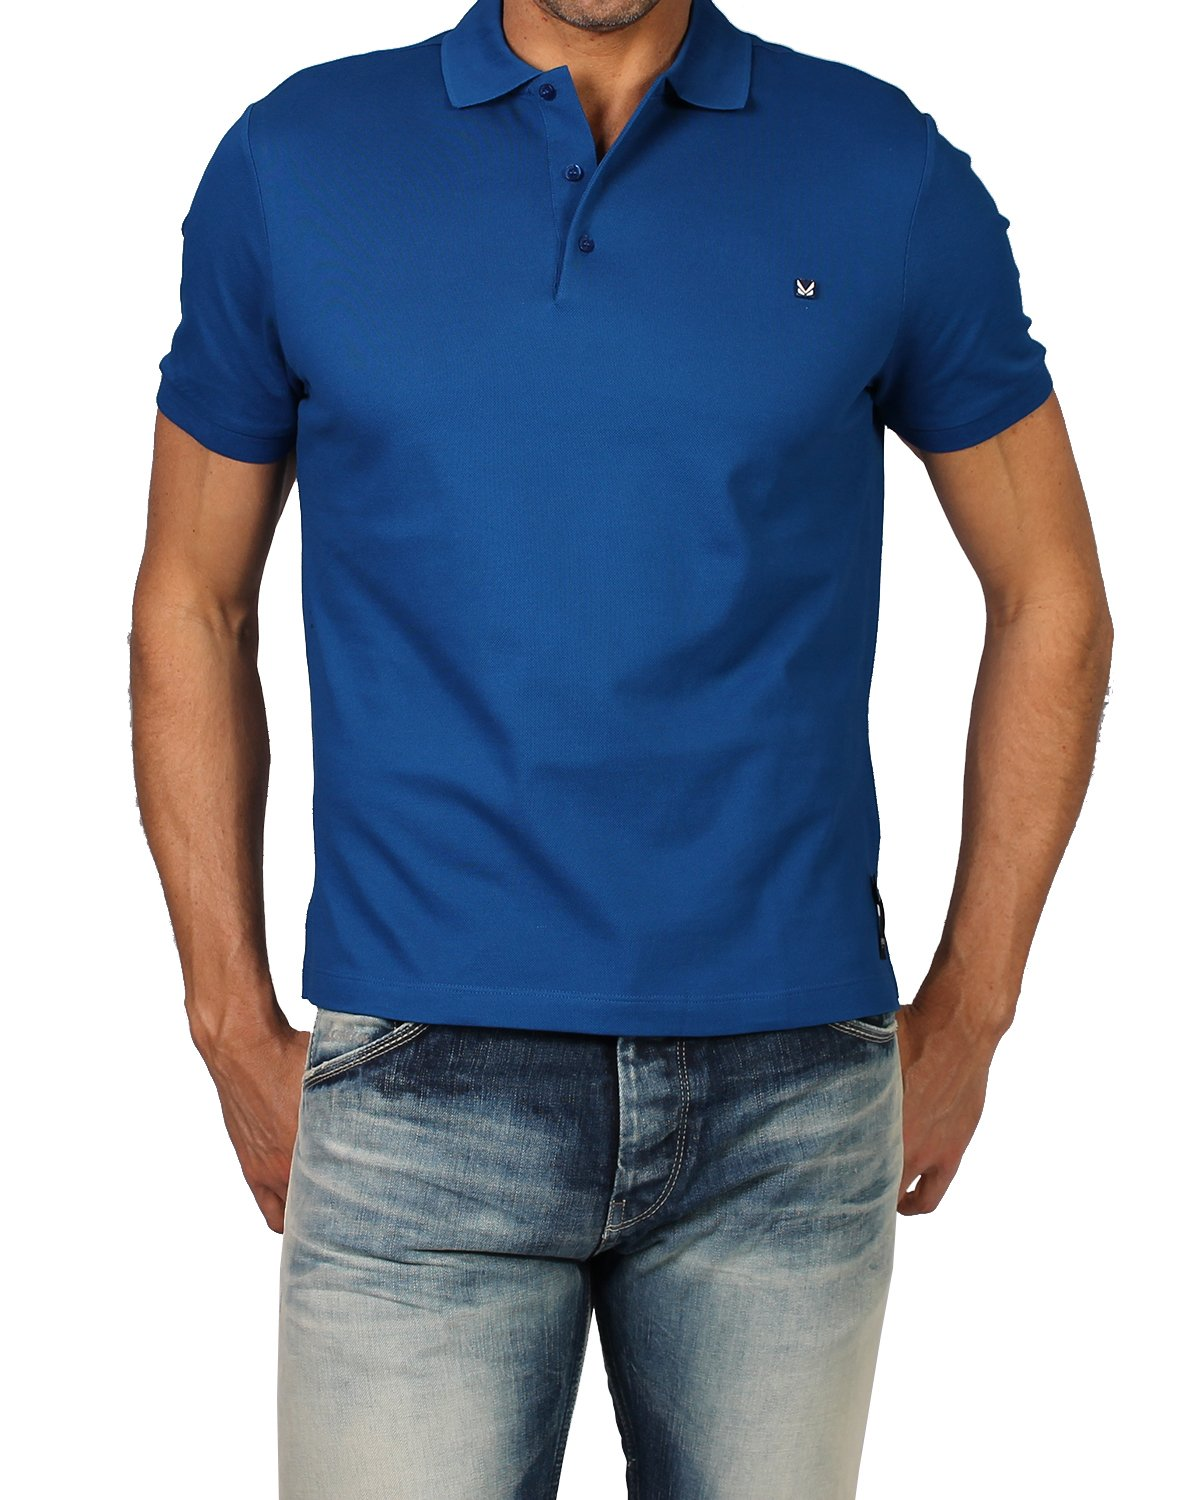 Fendi Men's Polo Bug (FY0707 1LW) - Blue, Large (IT/FR : 50)